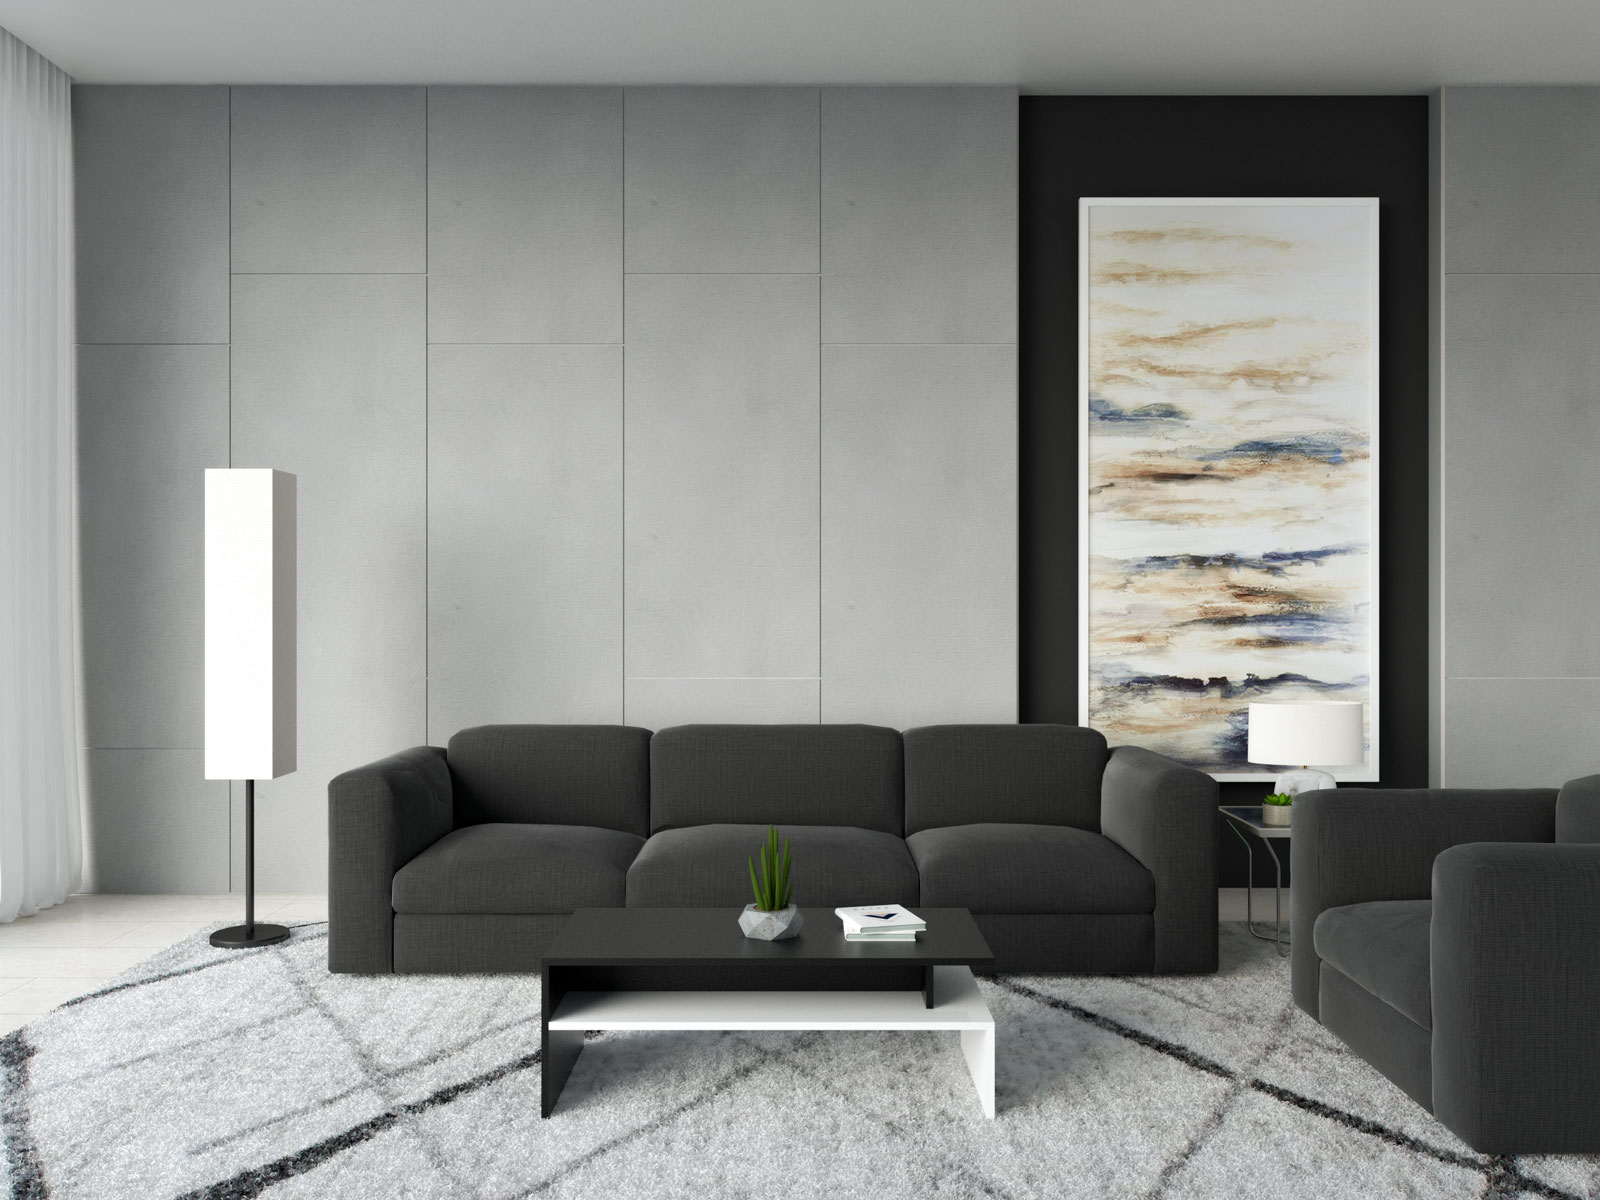 Black and white coffee table with black couch